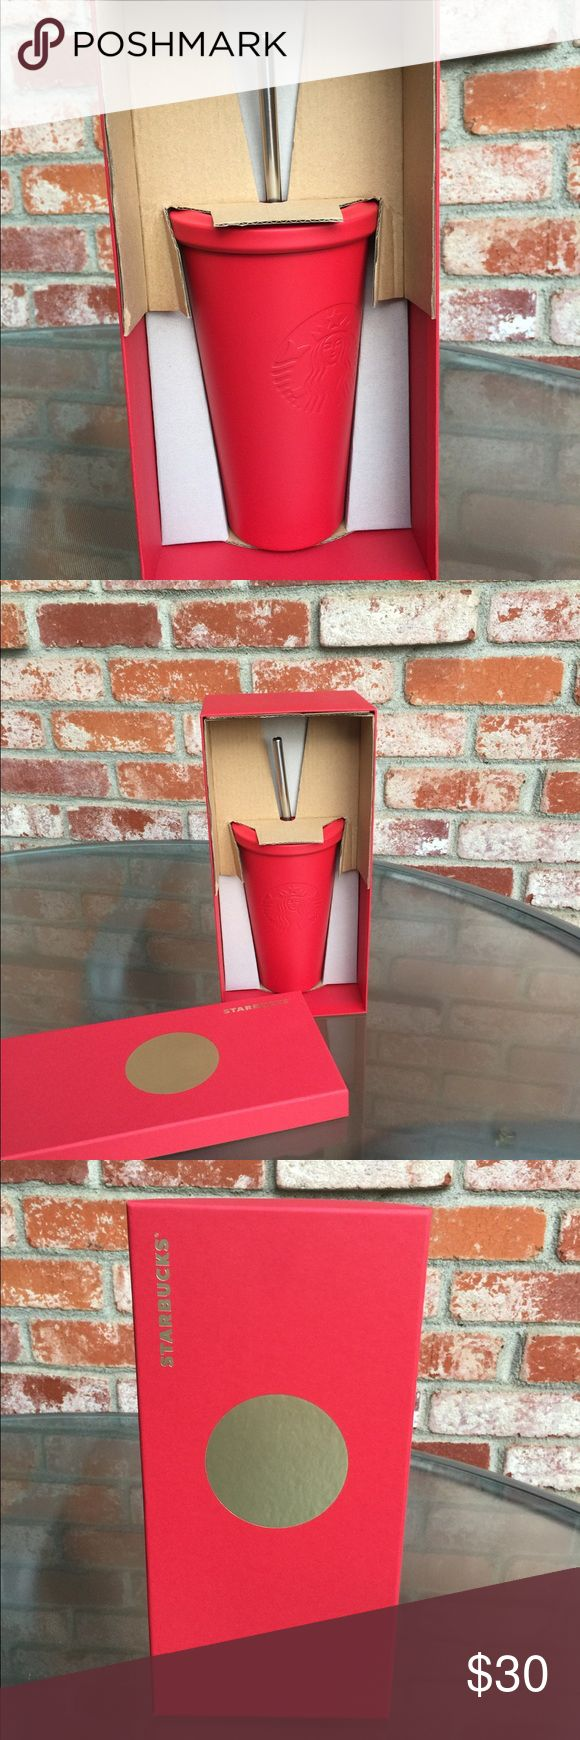 ⚡️FLASH SALE⚡️Starbucks Red cold cup New in box Starbucks Cold Cup. This is a nice red Matte color. This cup is brand new never been use. I believe it is a double walls stainless steel cup. Keep cold drink stay cold for many hours. I like this cup so much that I bought over 20 cups and gave to my friends and family last year. Love it😍 Starbucks Other